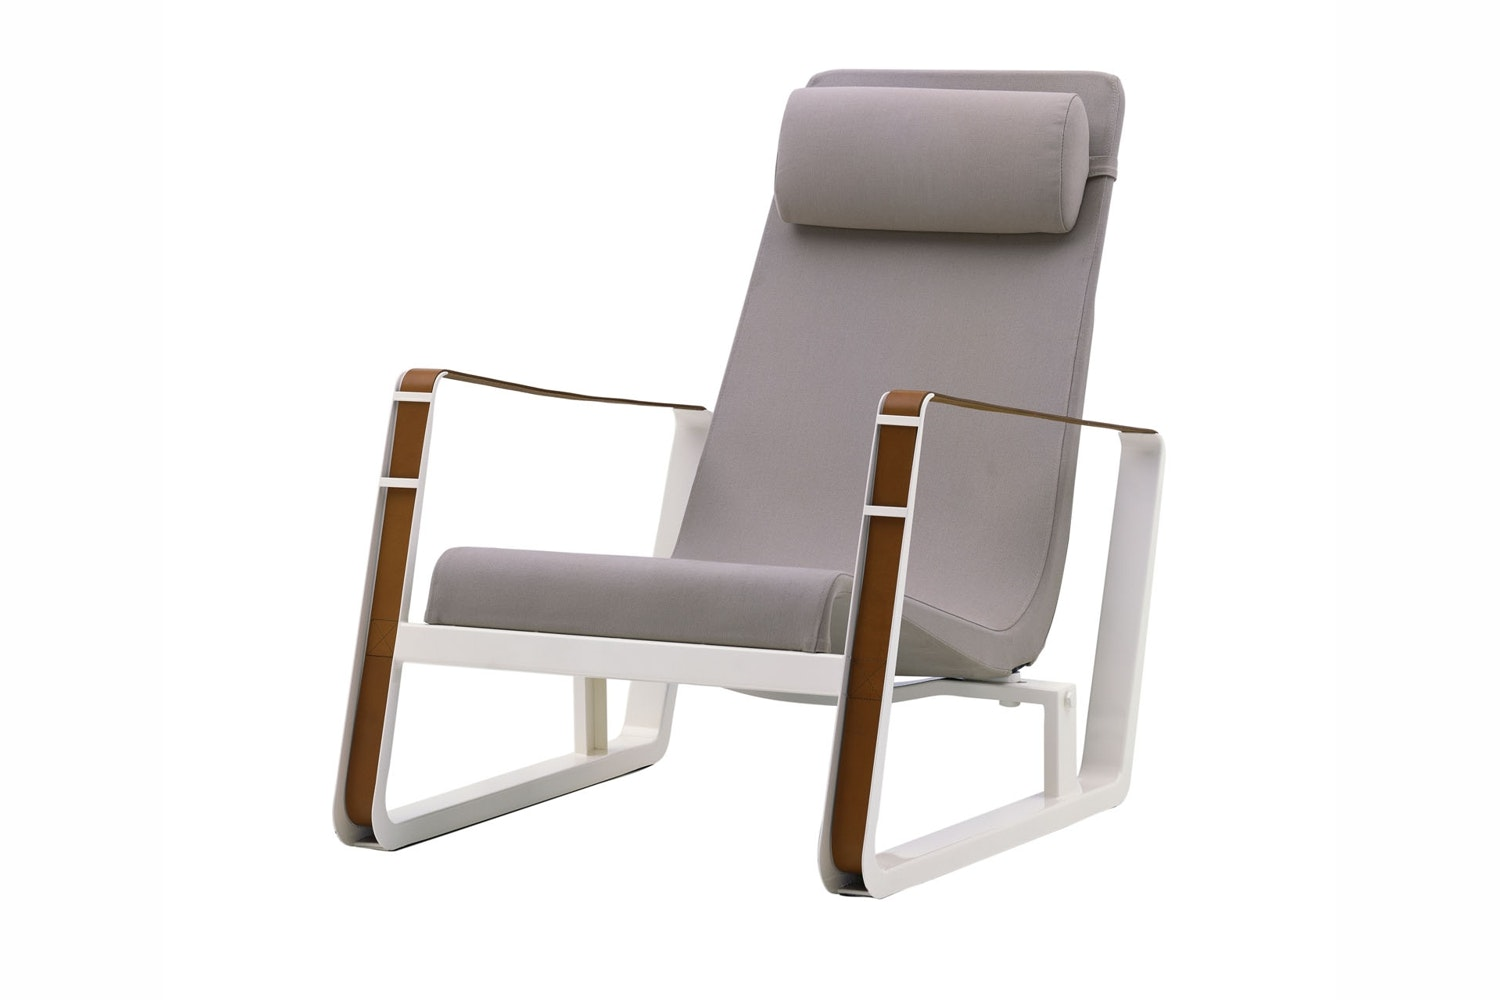 Cite Armchair by Jean Prouve for Vitra